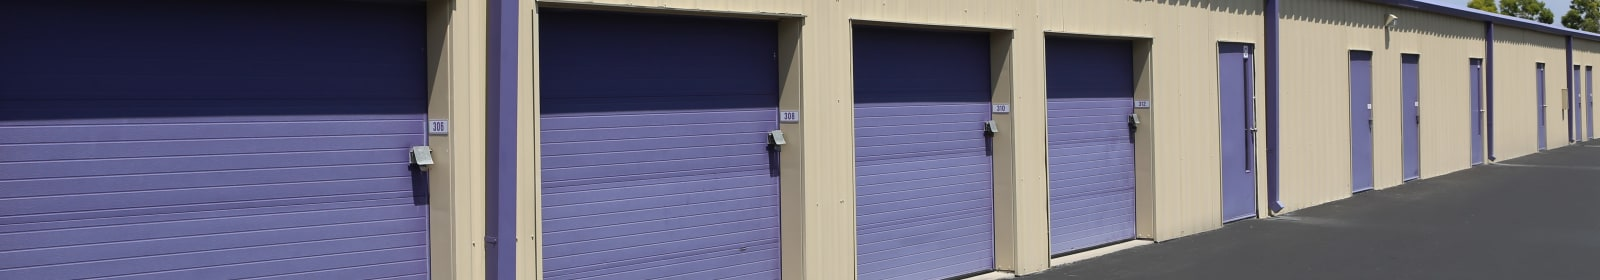 Climate-controlled storage at Midgard Self Storage in Jackson, Tennessee